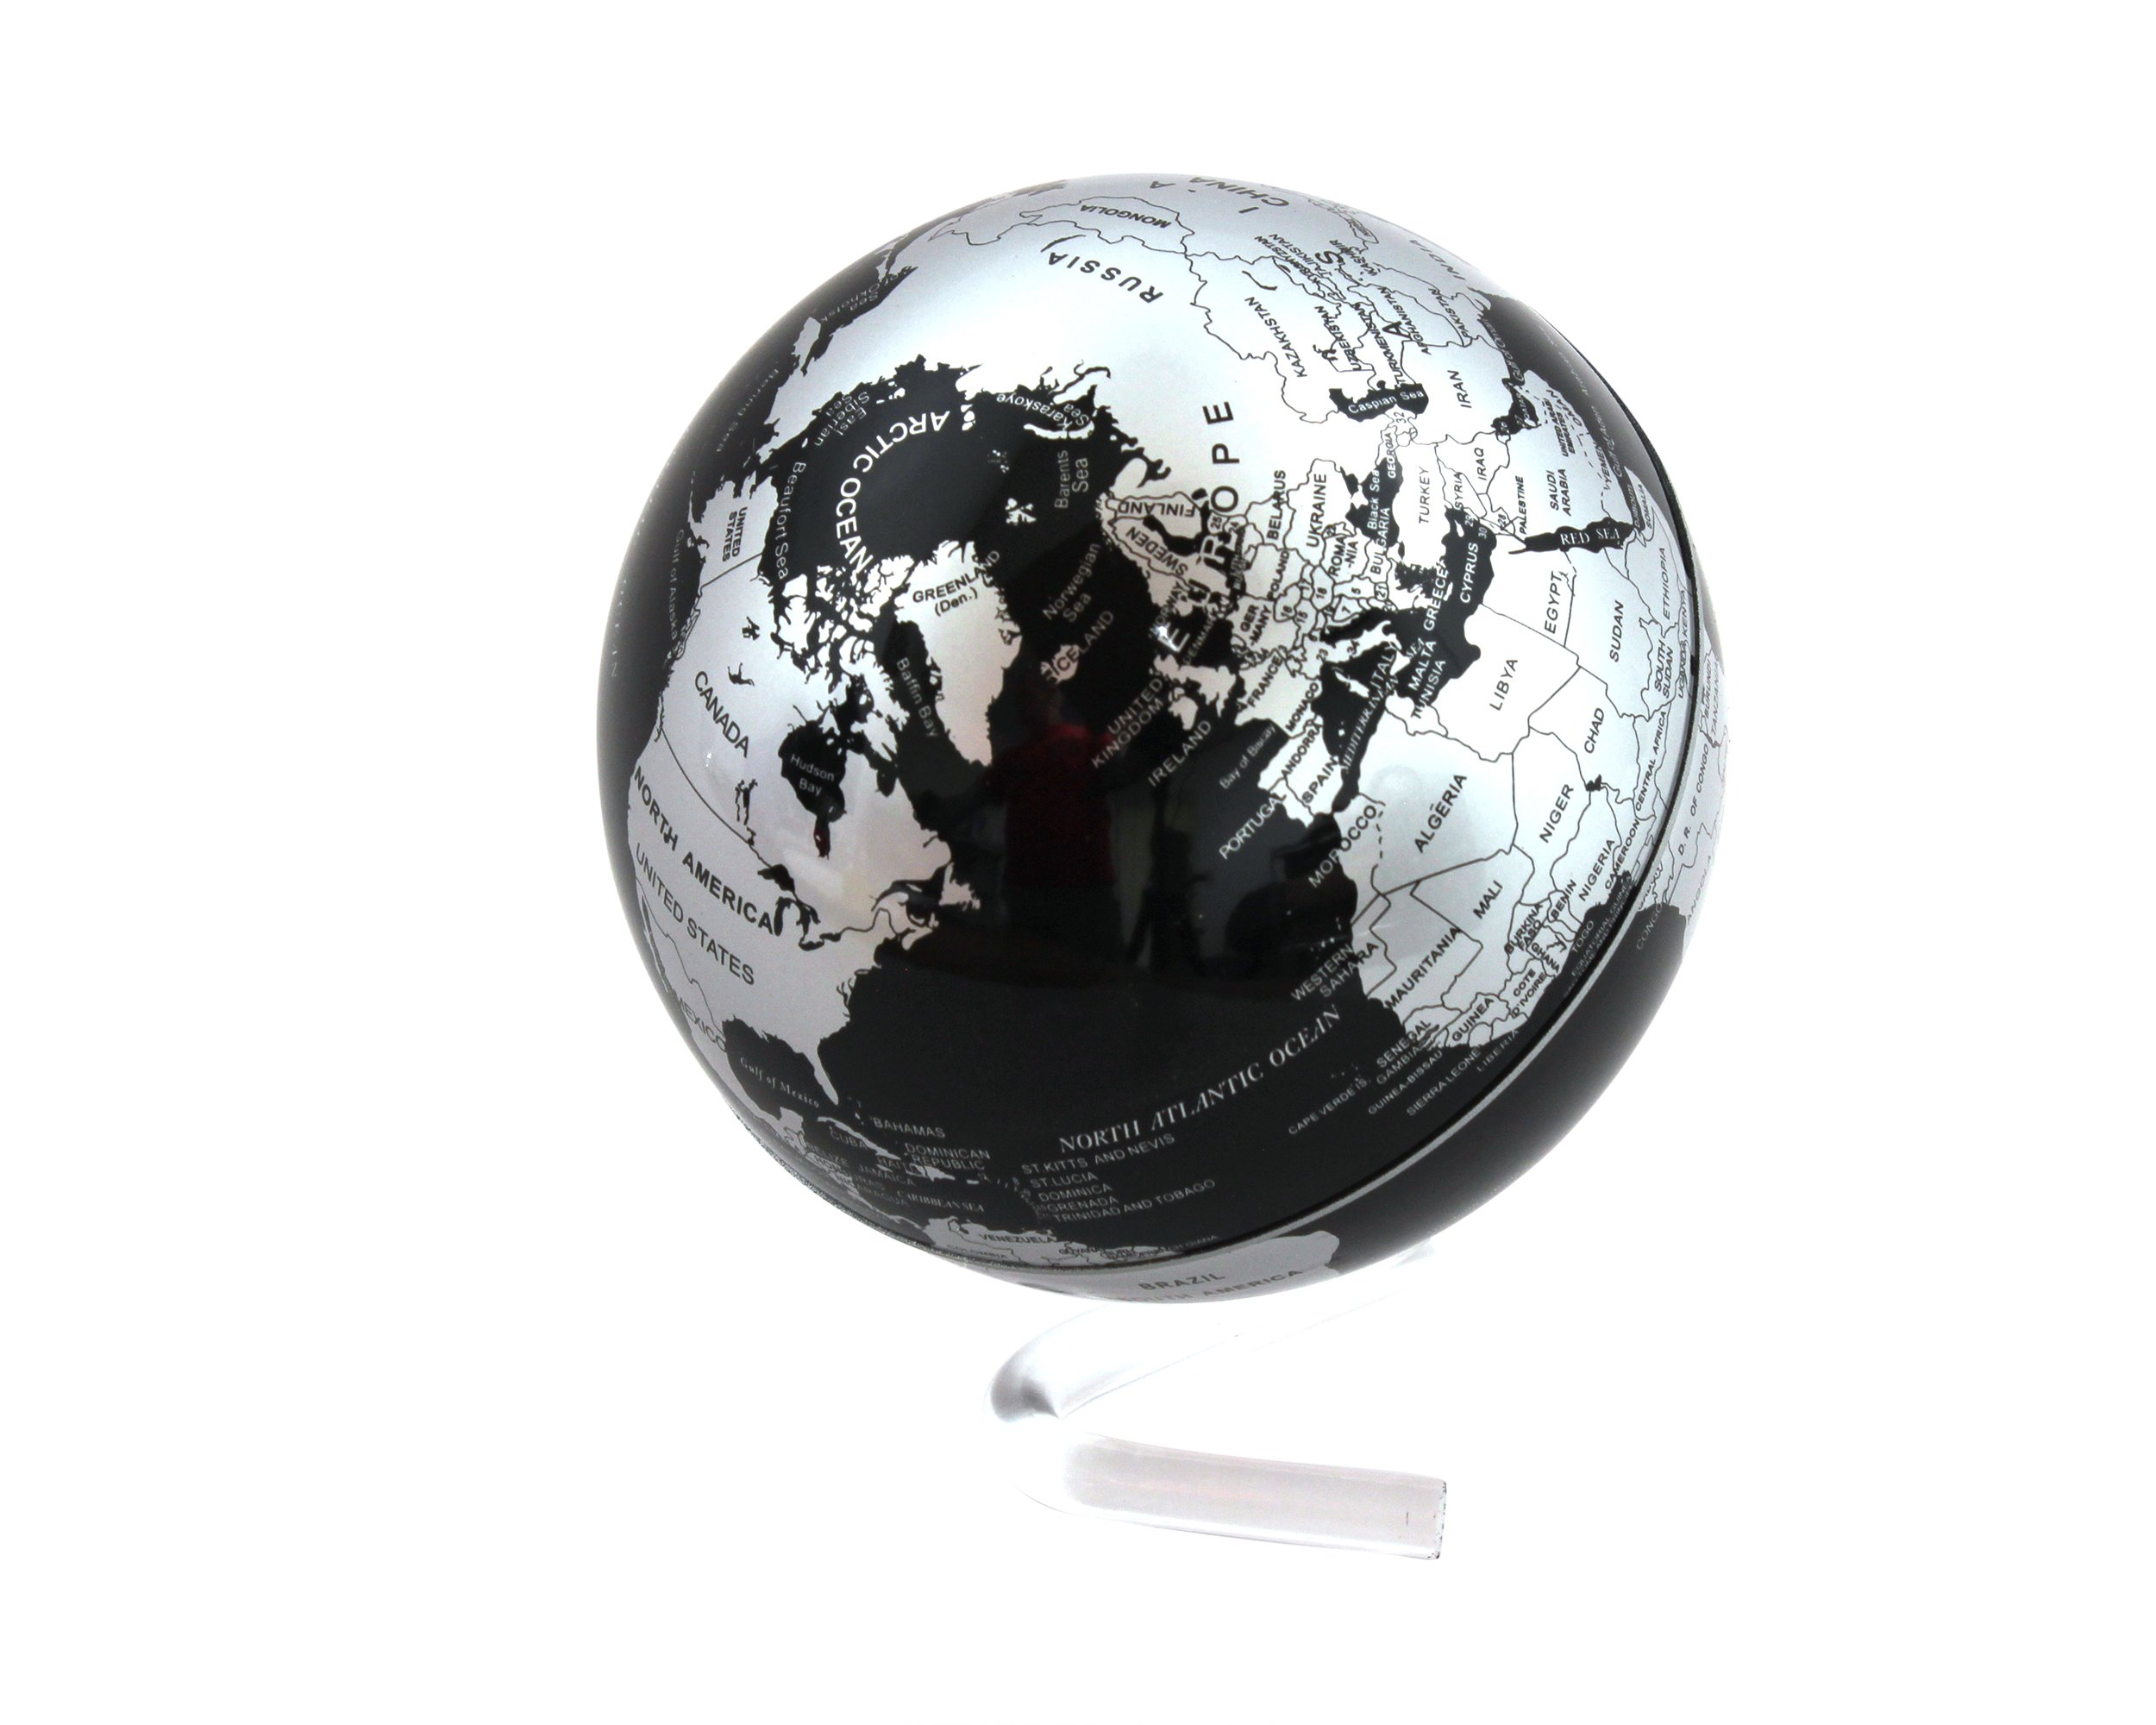 Self Rotating Globe - Auto Spinning Desk Rotary Globe with Color Changing LED- Revolving Globe - World, Planet Earth Globe Sphere - Home, Office Desktop Decoration - Educational (Black/Silver, 4'')